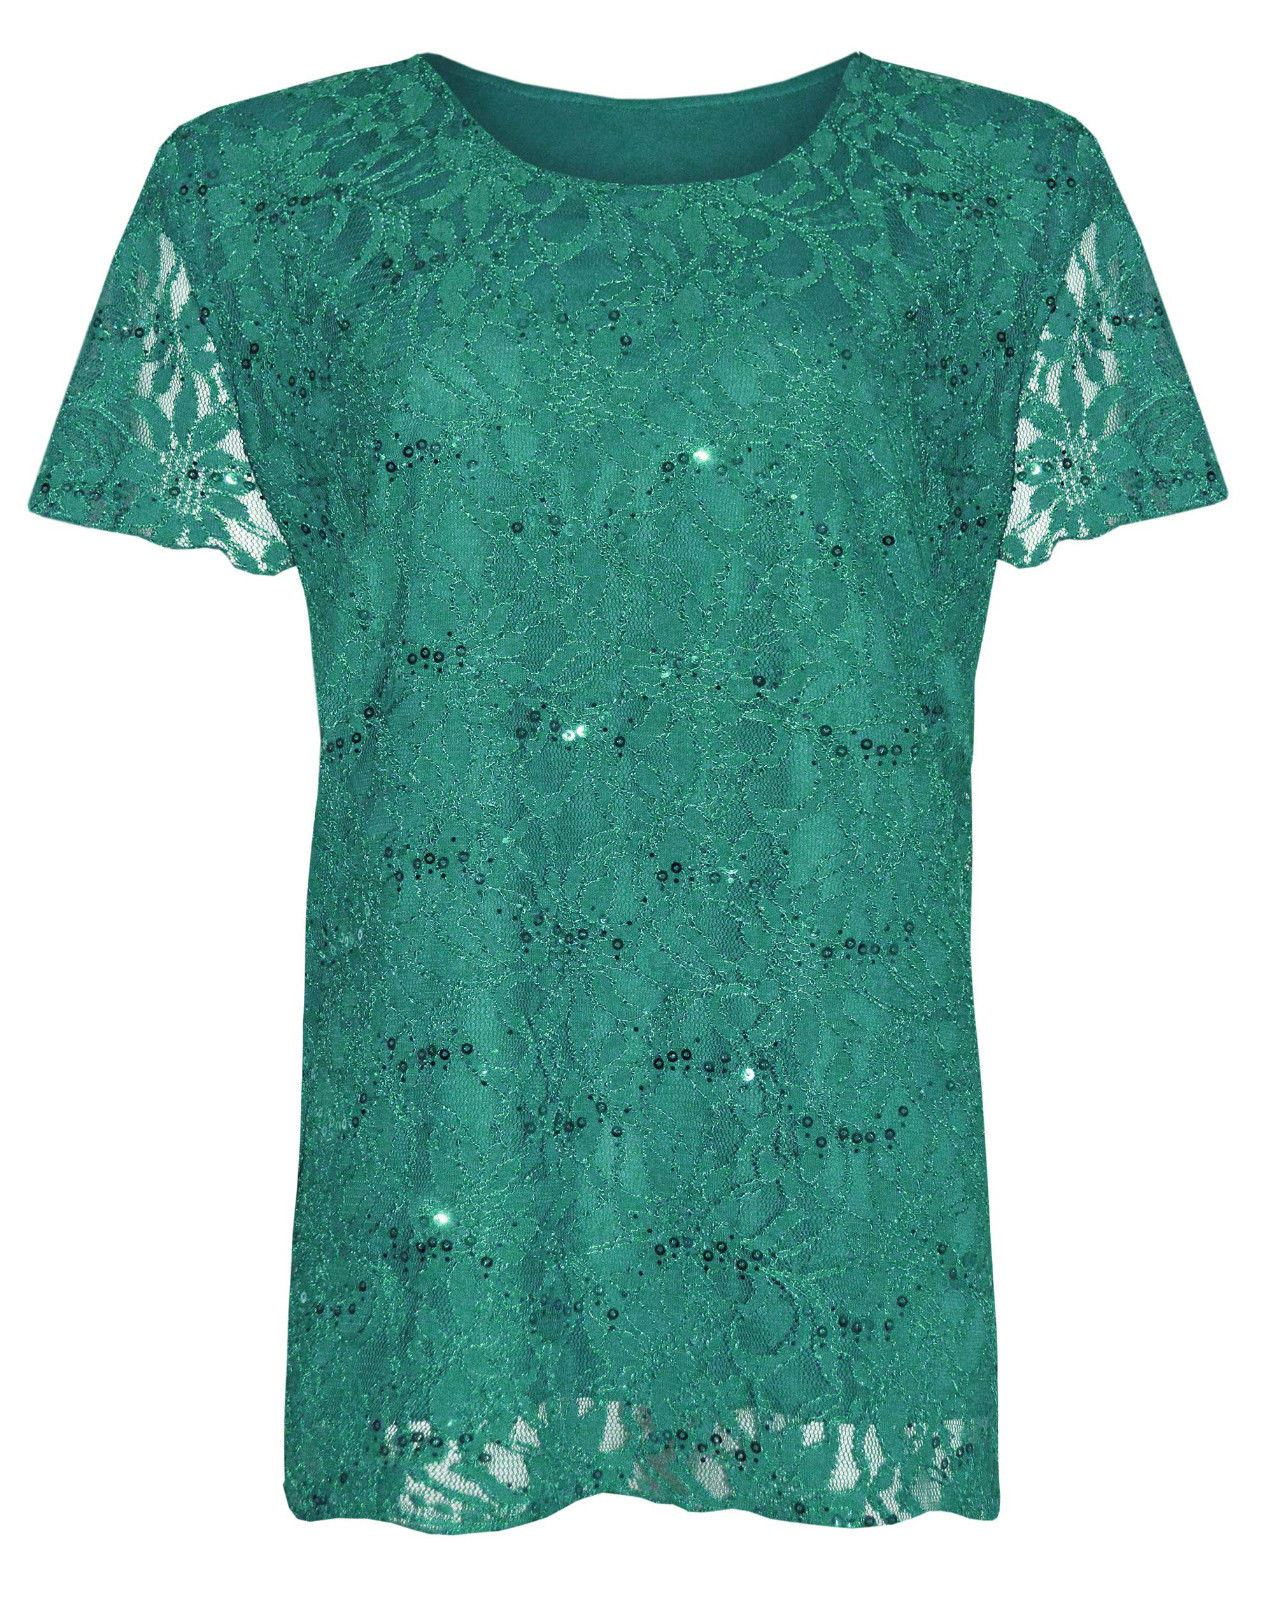 Womens Plus Size Lace Sequin Lined Blouse Floral Pattern